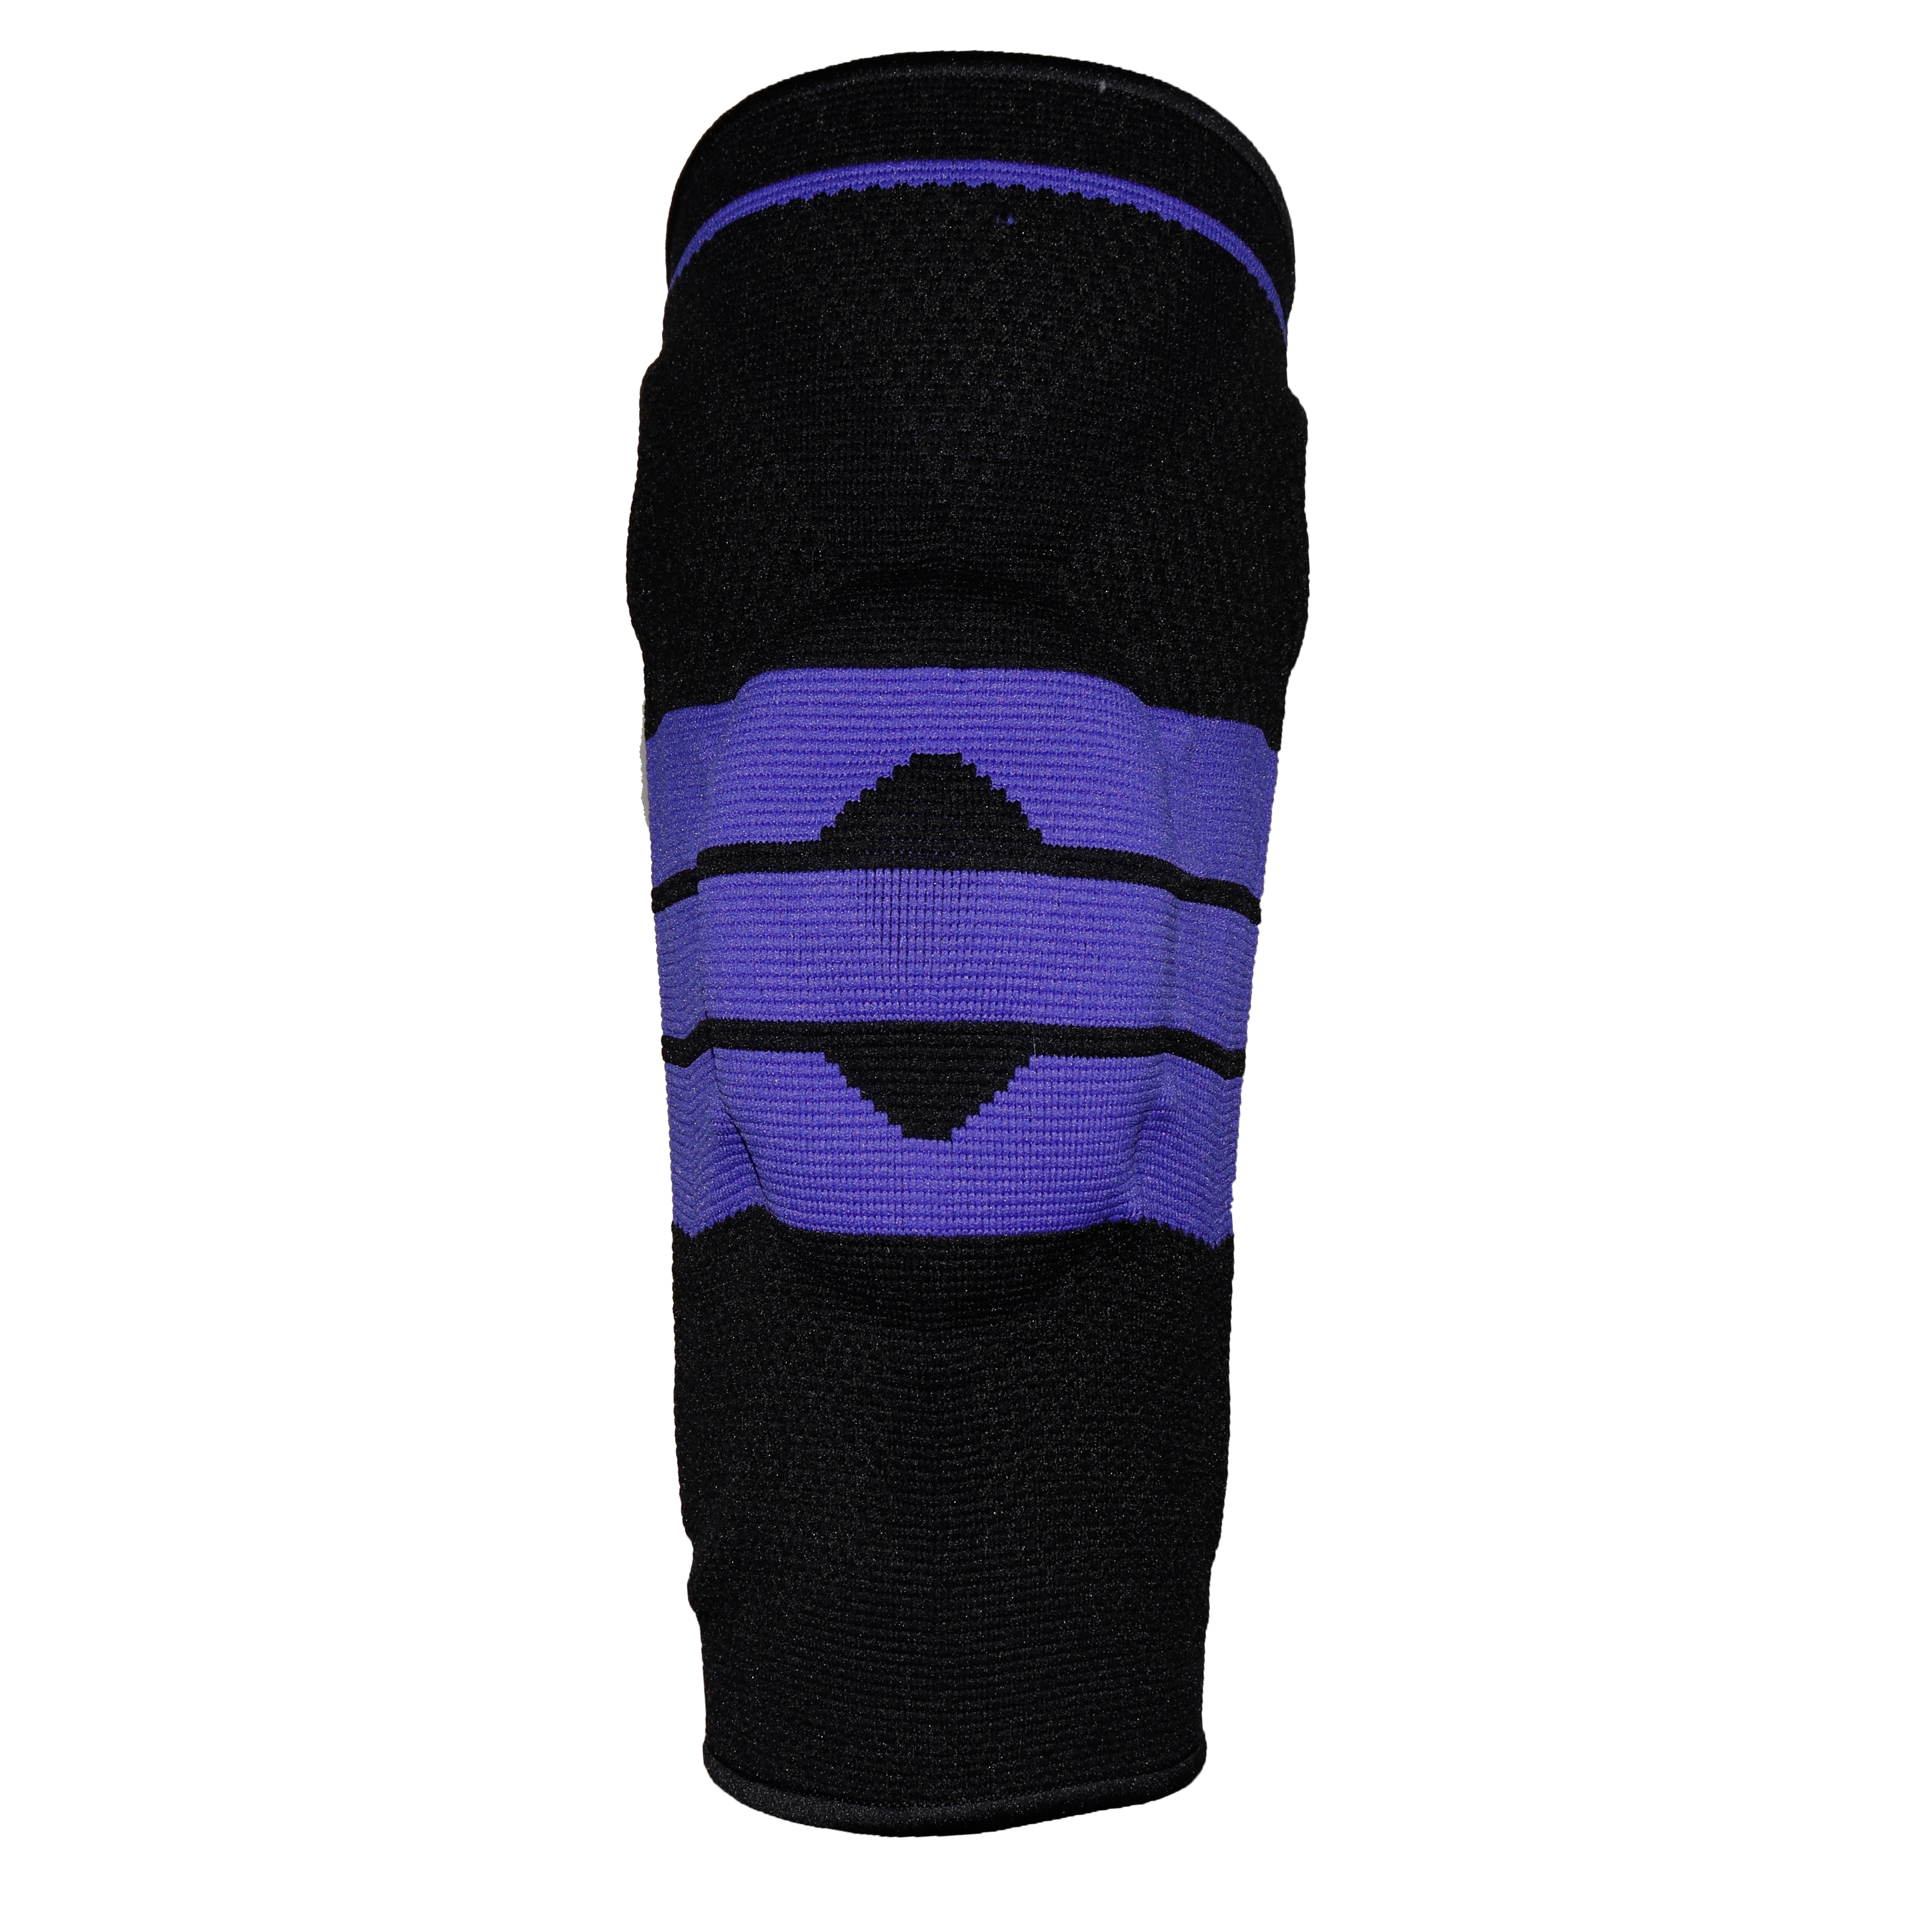 Knee Compression Sleeve - Best Knee Brace with Side Stabilizers & Patella Gel Pads for Knee Support, Black